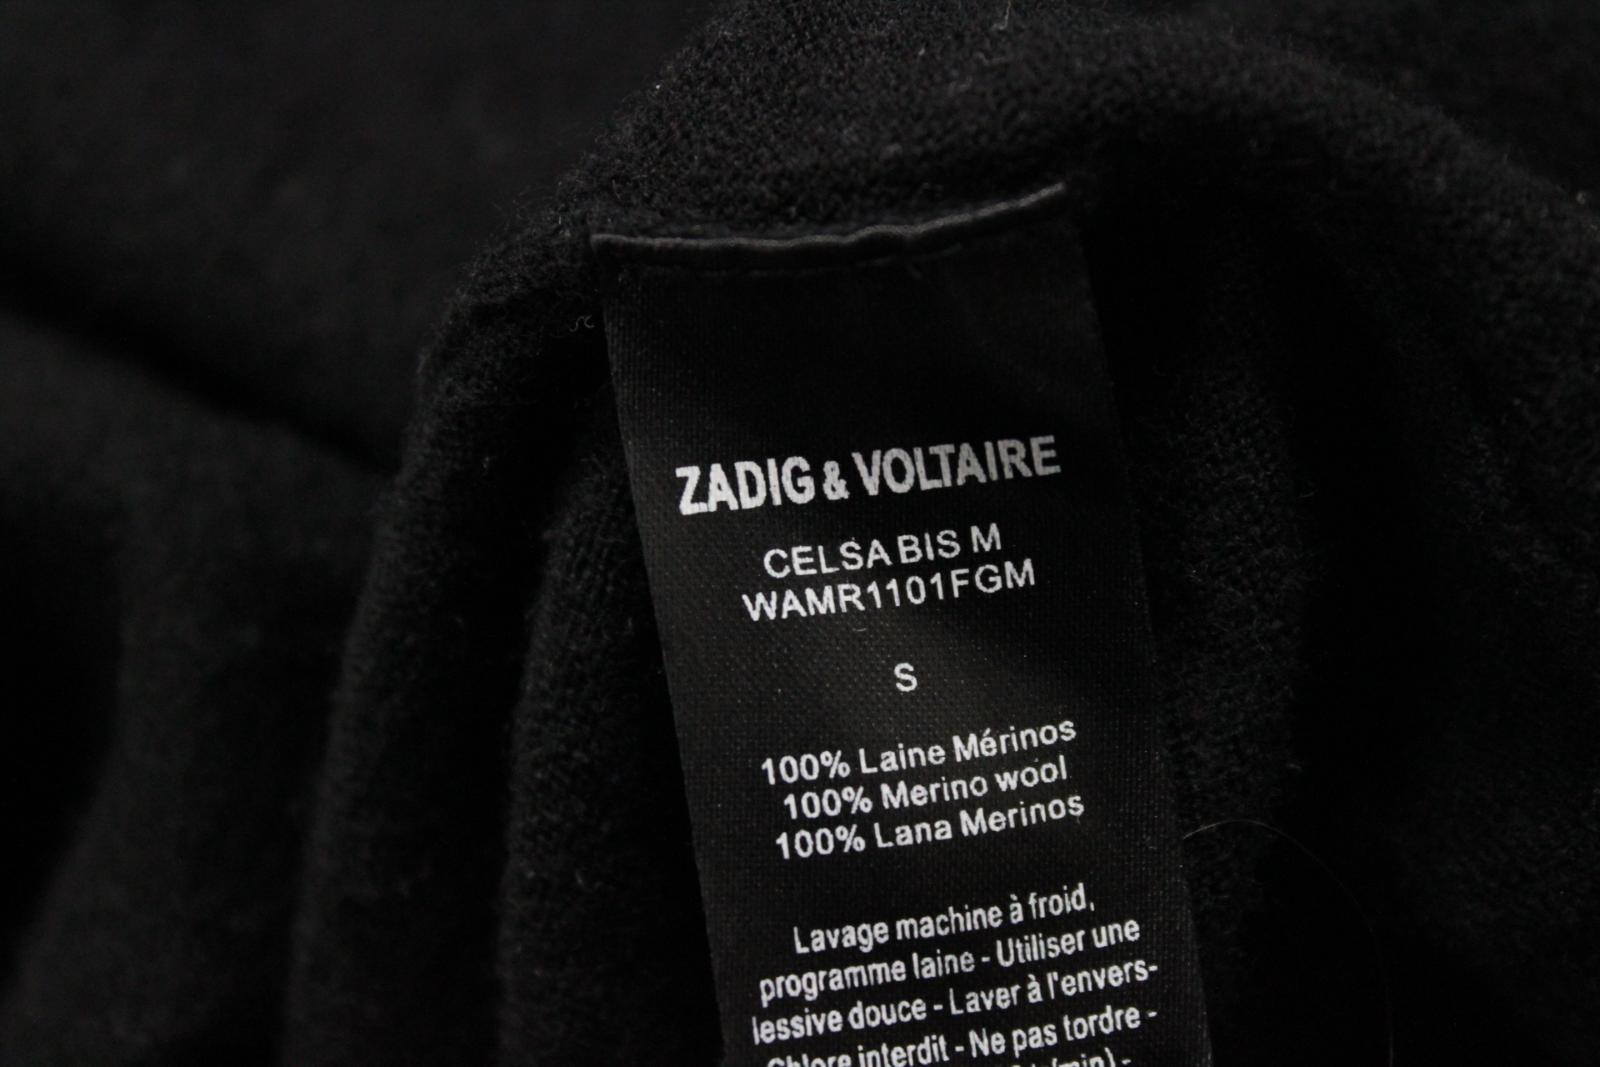 ZADIG-amp-VOLTAIRE-Black-Wool-Long-Sleeve-V-Neck-Sweater-Jumper-Size-Small miniature 10